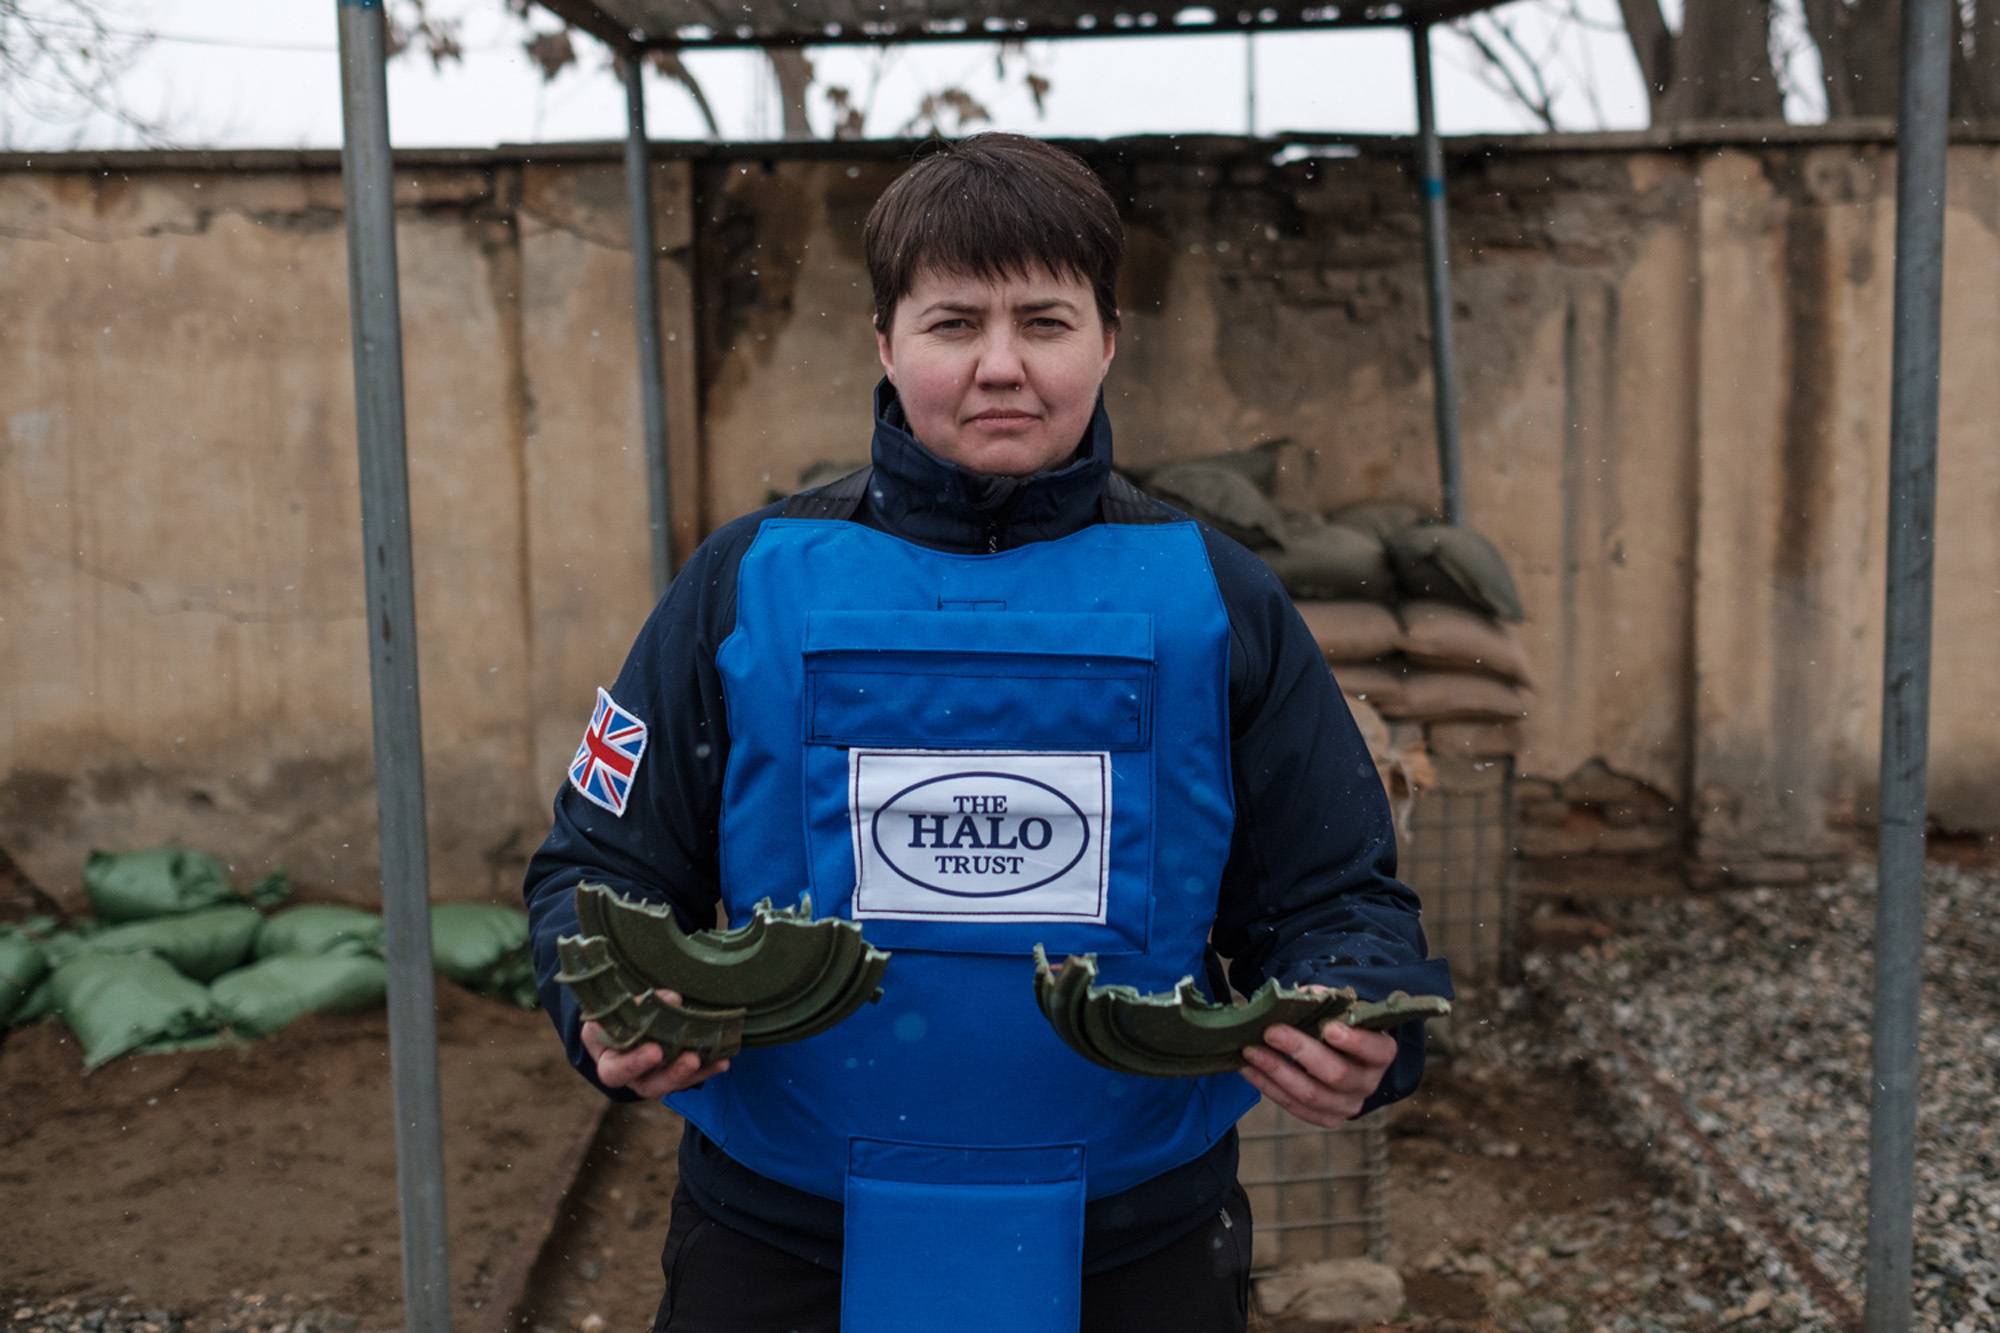 Scottish Conservative leader Ruth Davidson being given training on how to find, excavate and remove landmines by staff of the charity during her visit to Kabul, Afghanistan (HALO Trust/PA Wire)